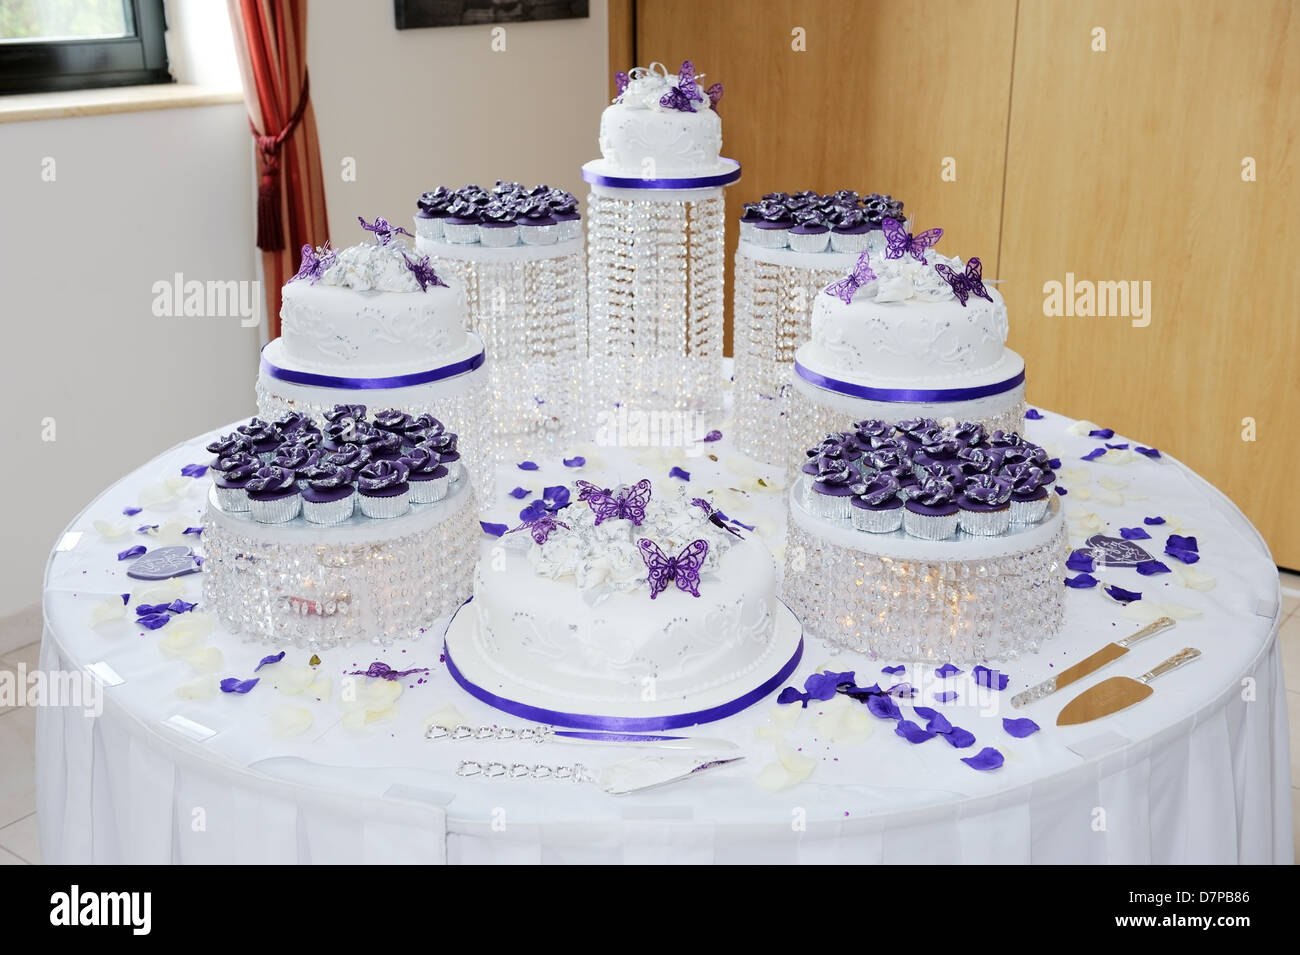 Huge wedding white and purple wedding cake at reception decorated     Huge wedding white and purple wedding cake at reception decorated with  petals and butterflies